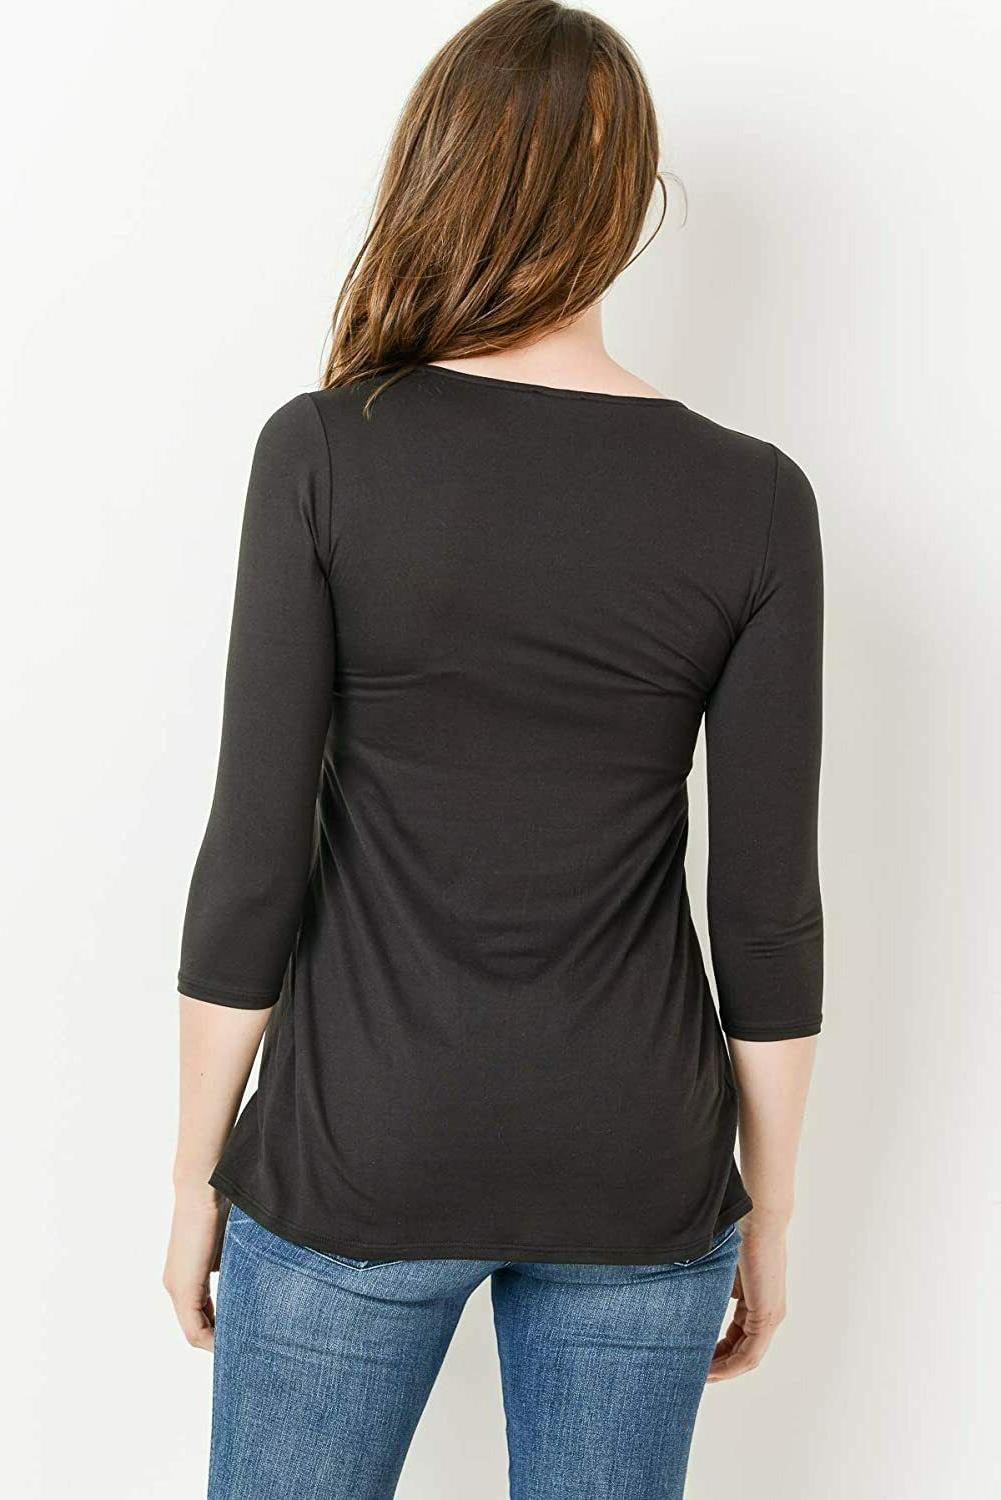 LaClef Women's Front Pleat Maternity Top,